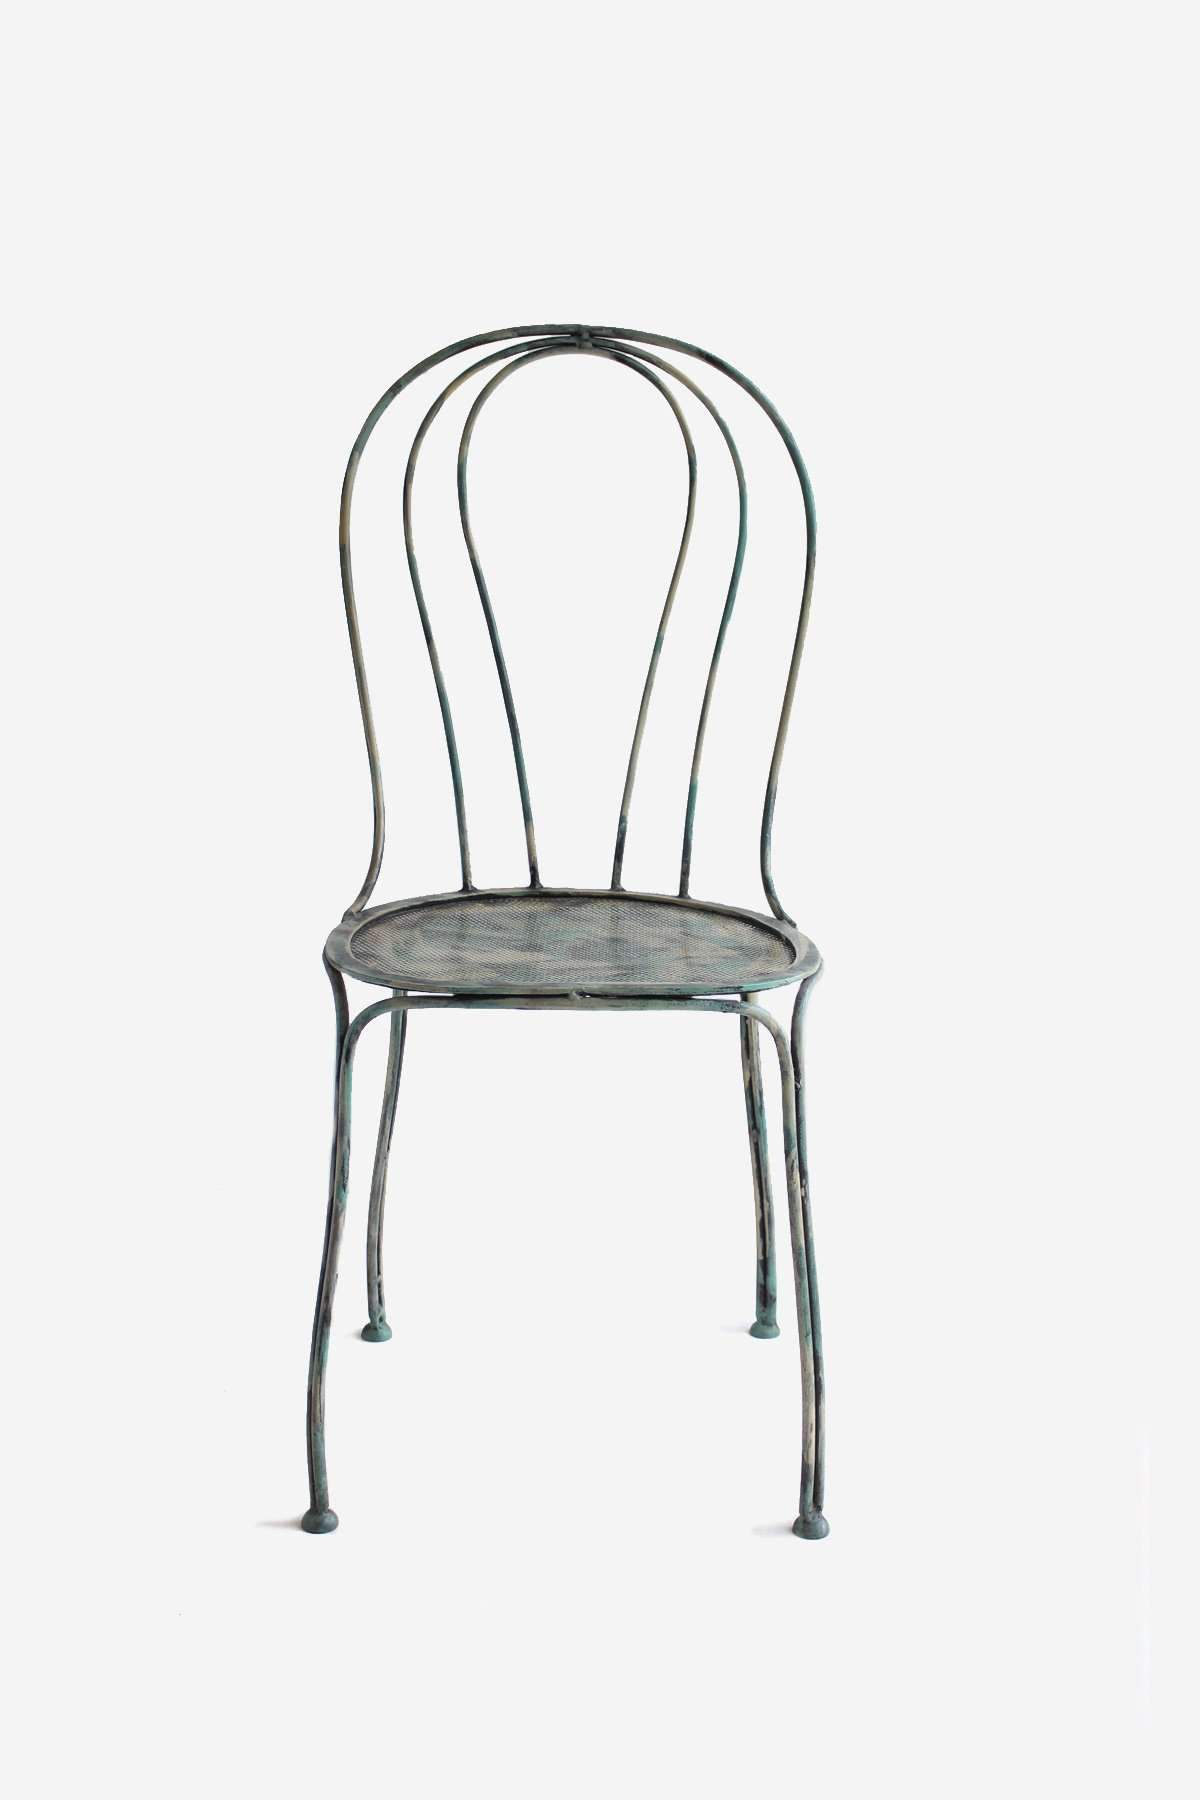 Buy Cafe Chair, Wooden Chairs & Benches Online in India